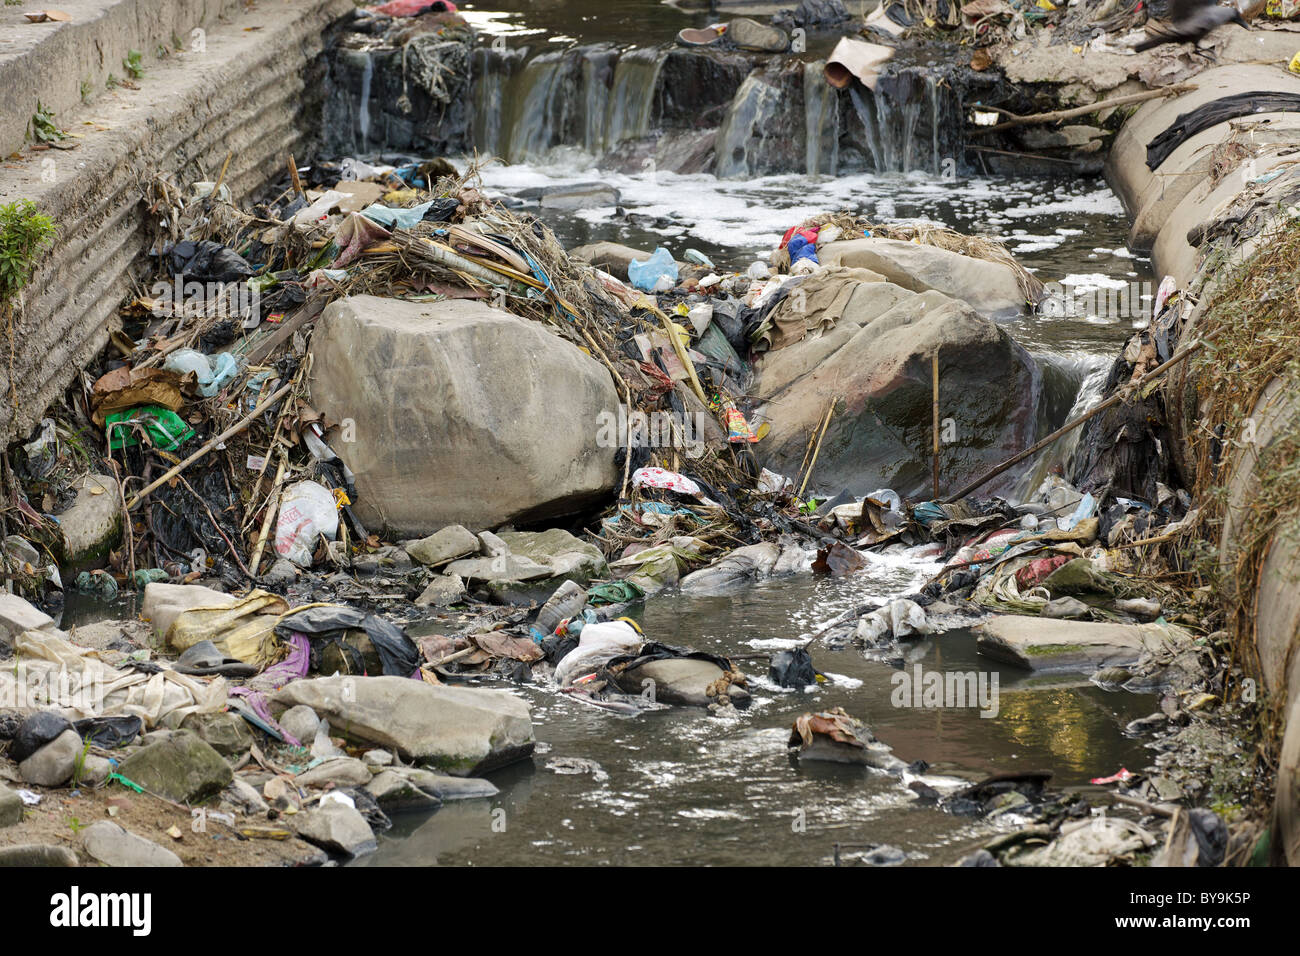 heavy pollution in the river, kathmandu, nepal - Stock Image